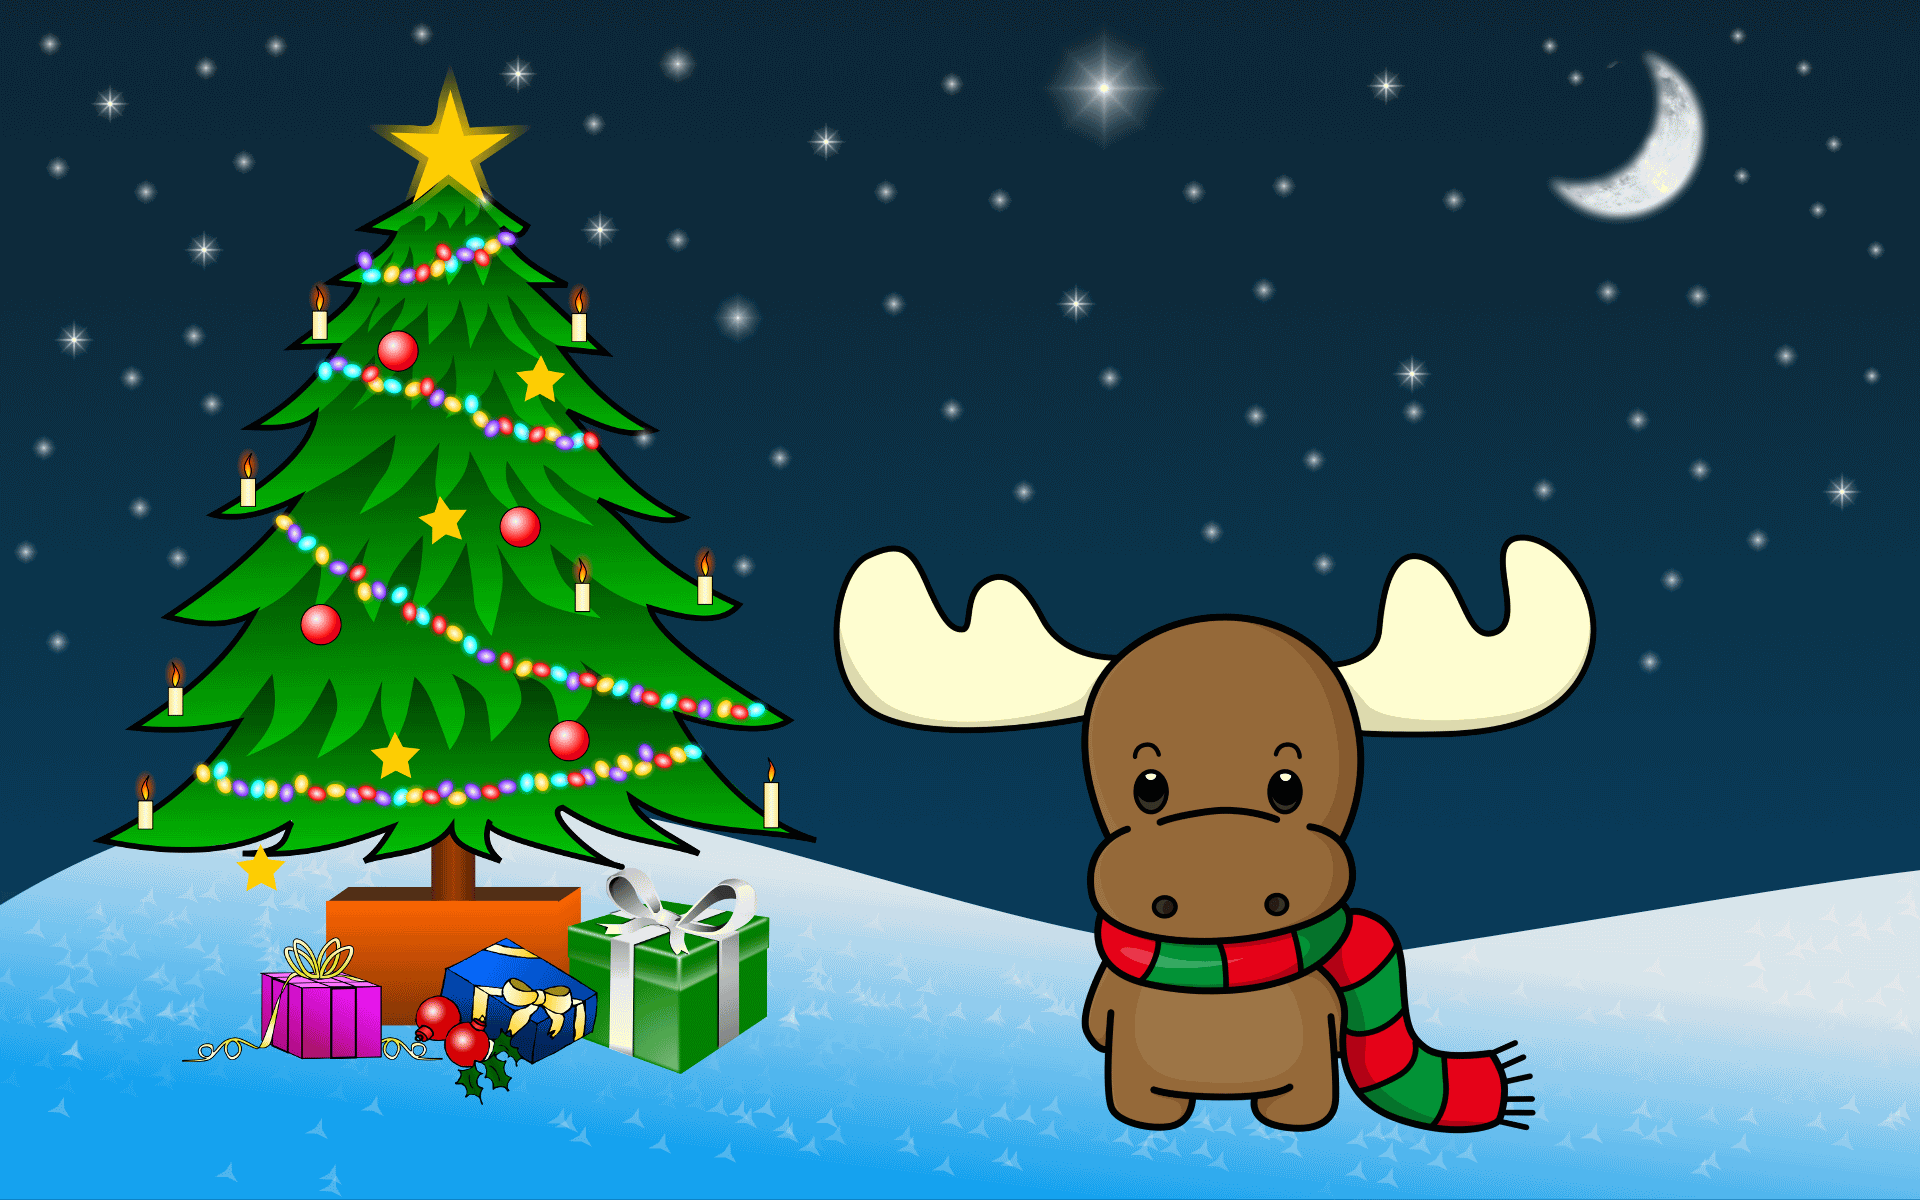 Merry Christmas Images Hd.Reindeer Wishes You Merry Christmas Hd Wallpaper